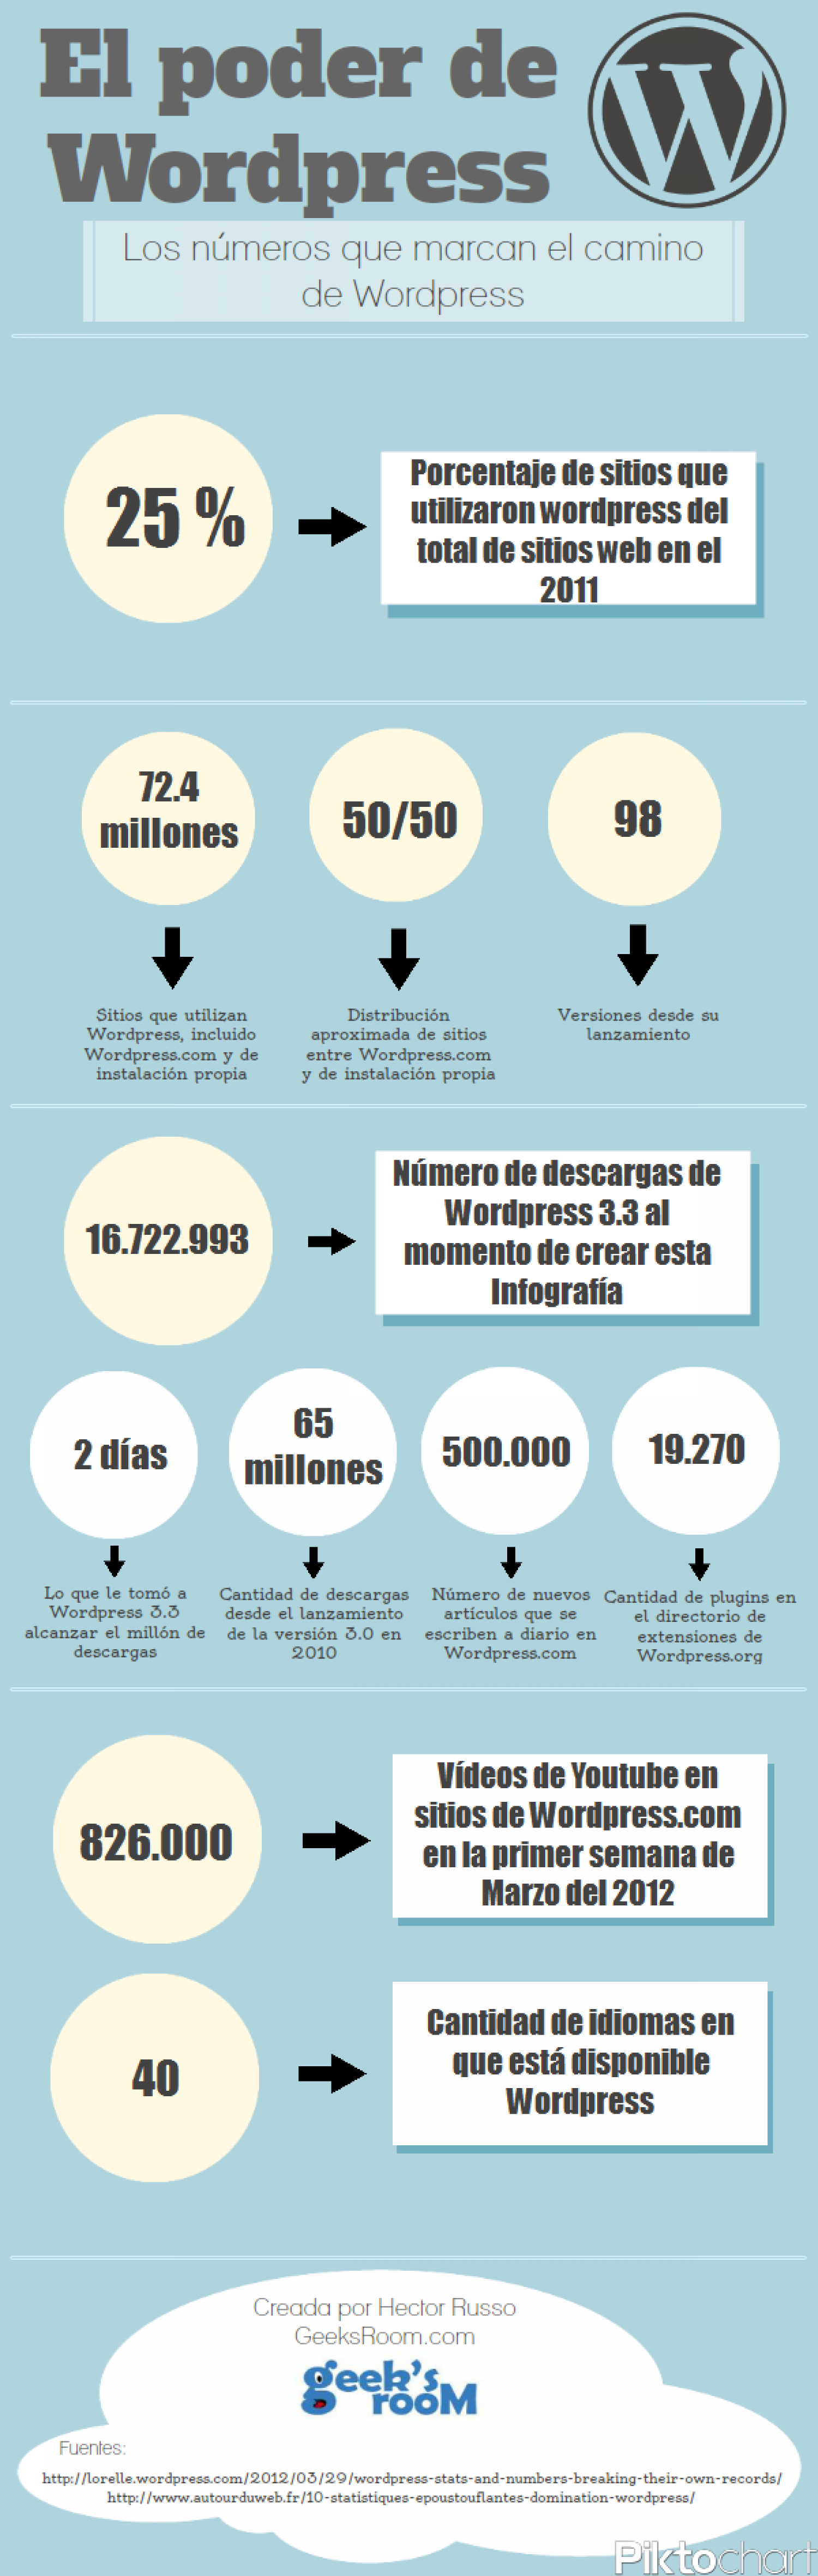 El Poder de Wordpress Infographic